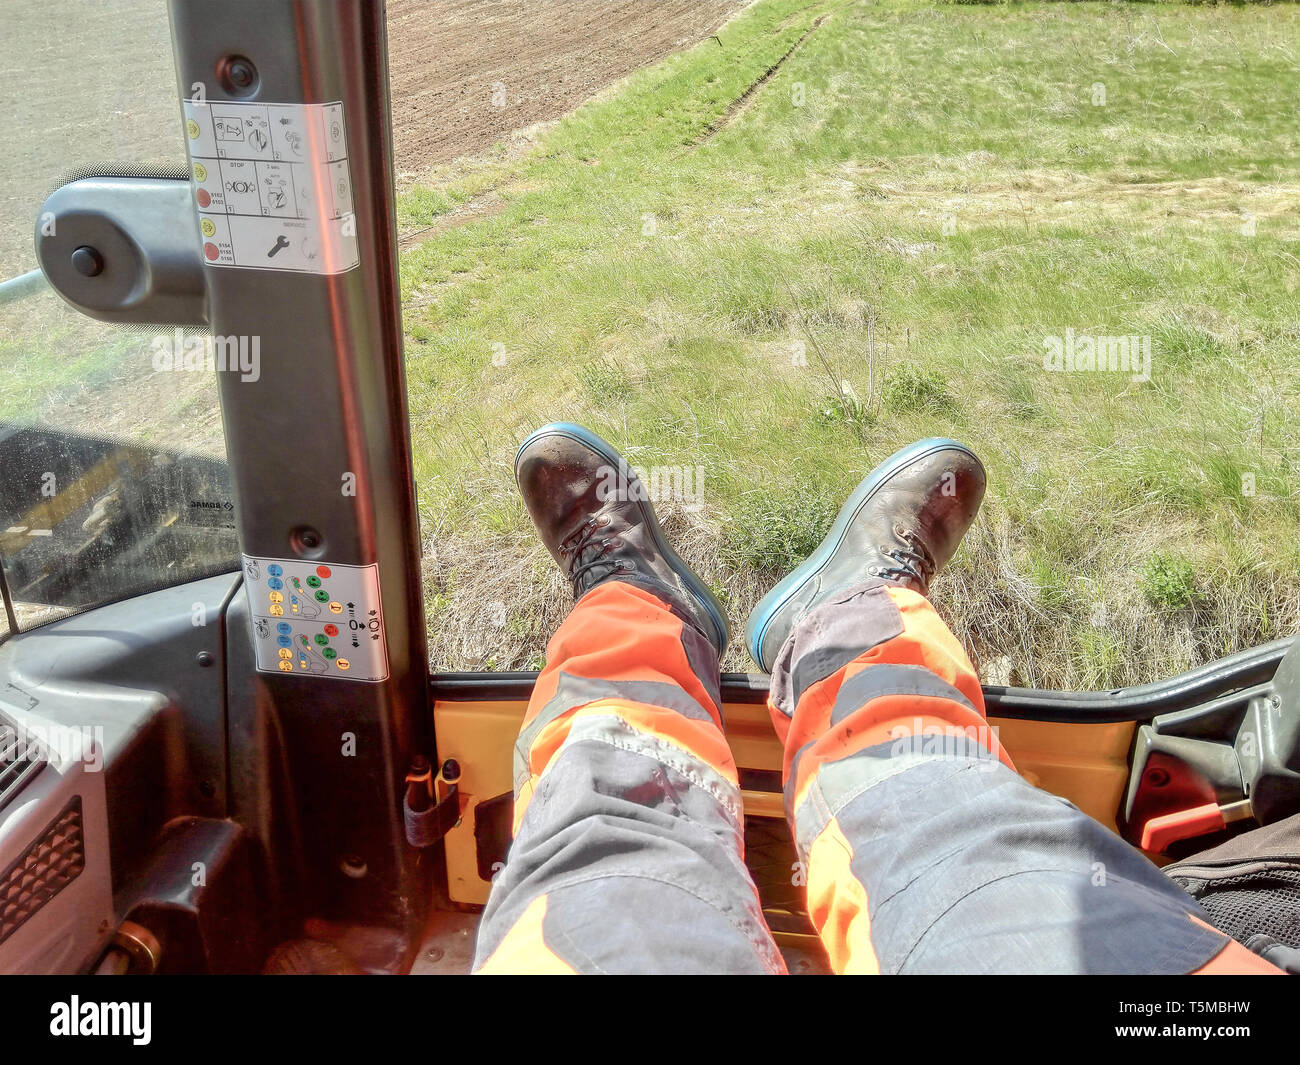 Sokobanja, Serbia - April 25, 2019: Worker rests his legs during the break while waiting to start rolling the roller in Sokobanja Serbia - Stock Image